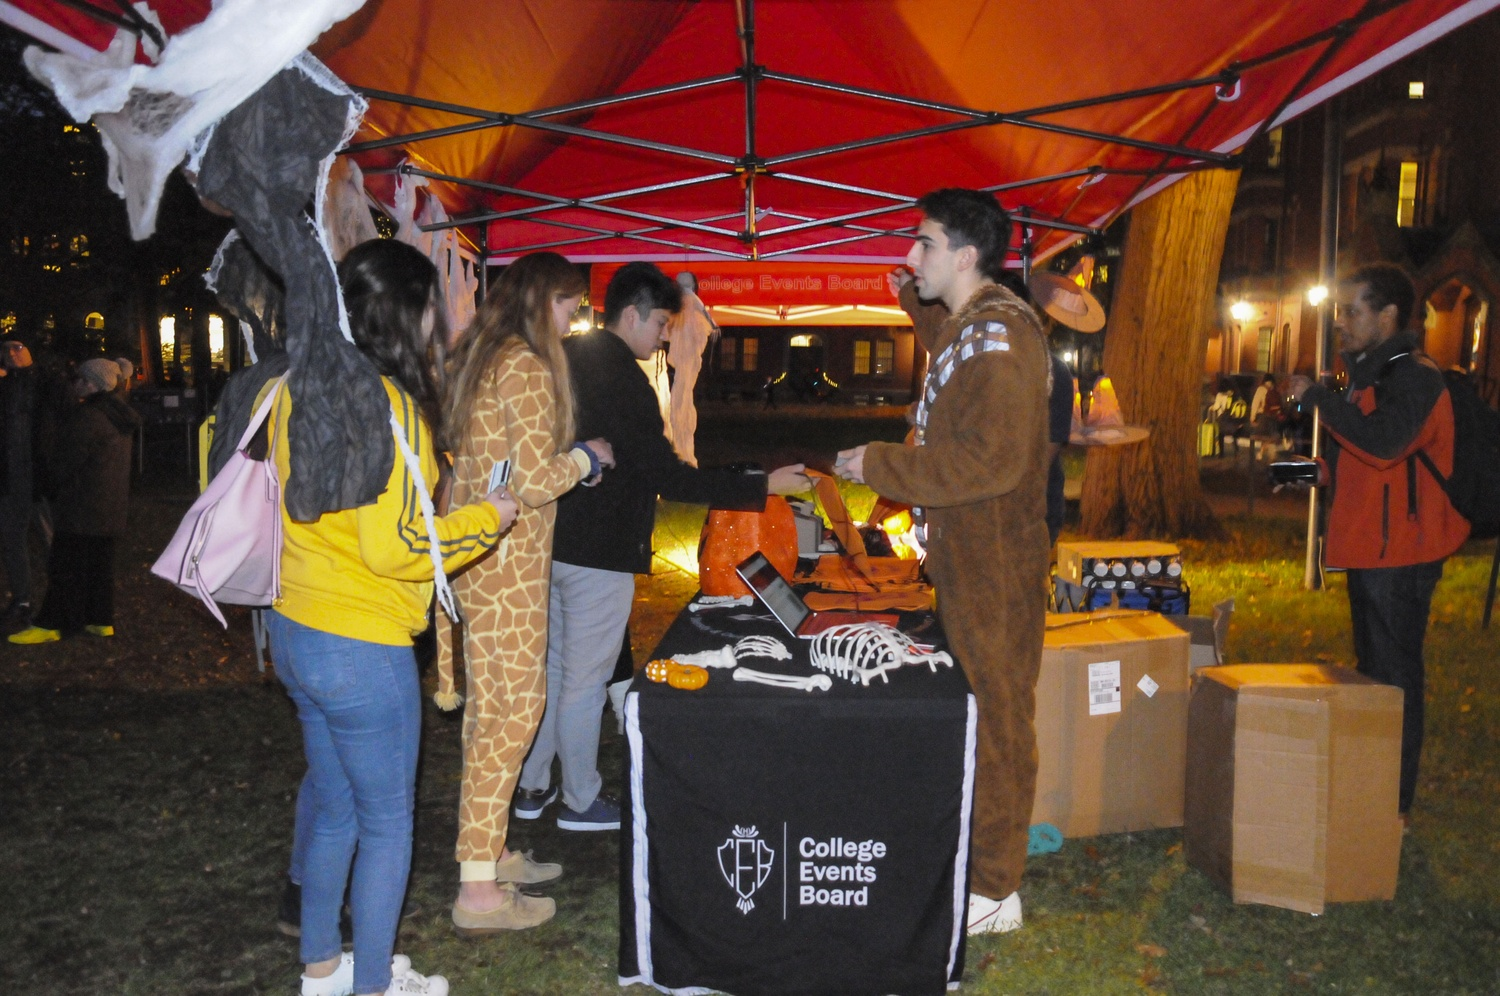 The College Events Board hosted a fun Trick or Treat event in Harvard Yard on Halloween.